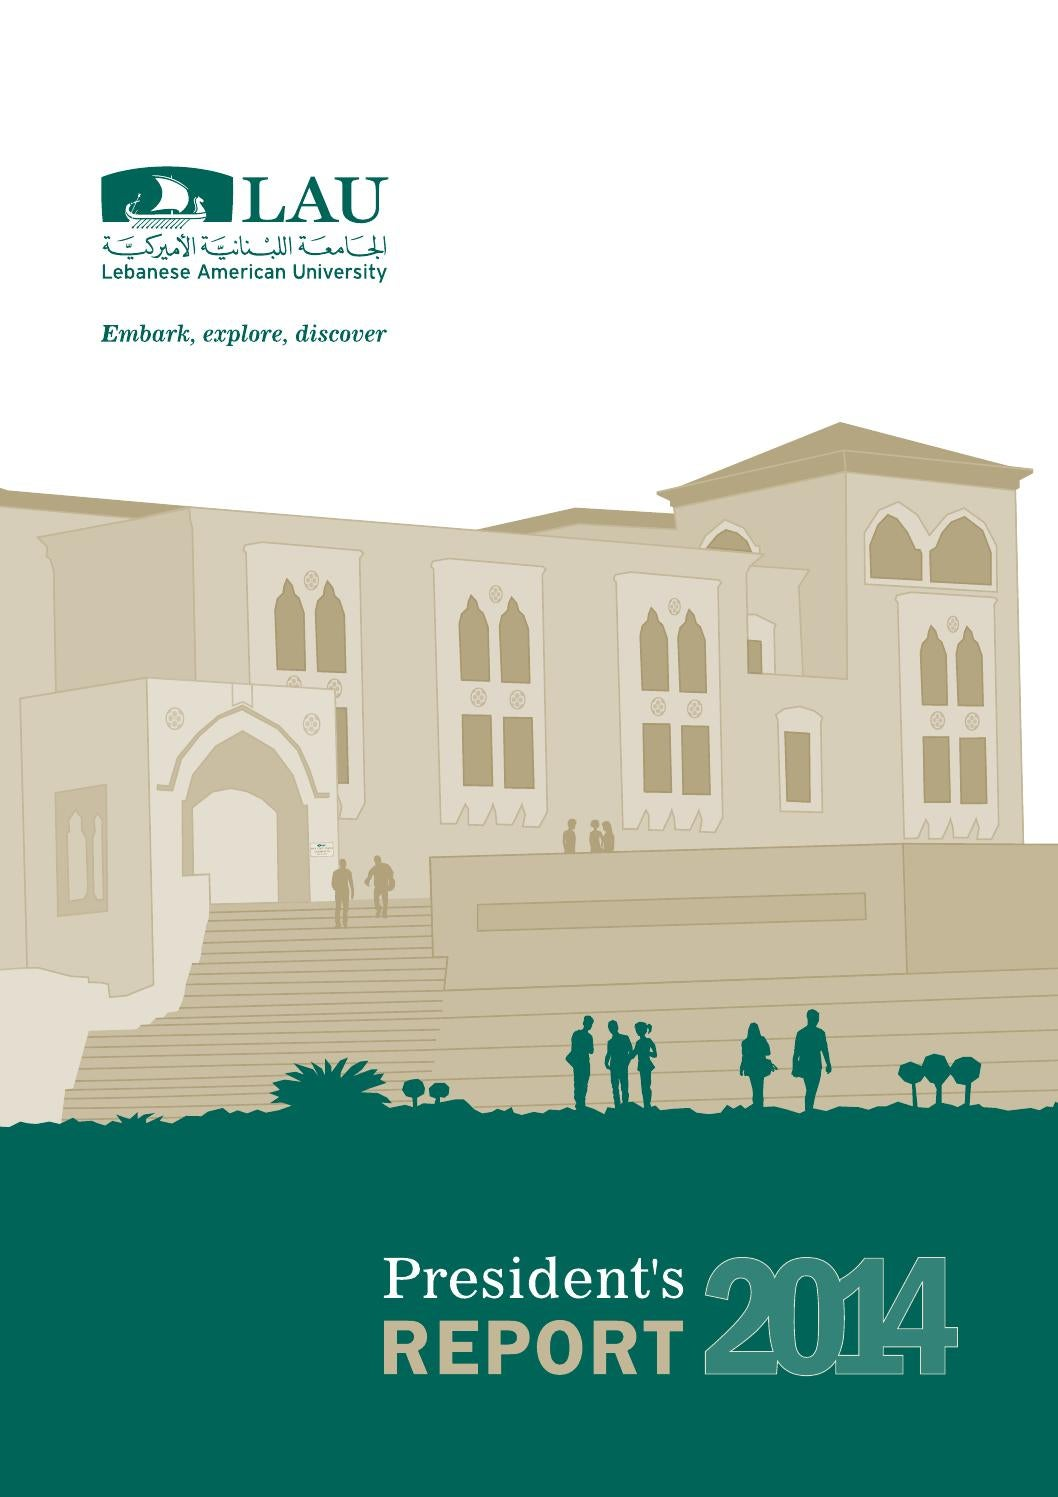 LAU's President report 2014 by Lebanese American University